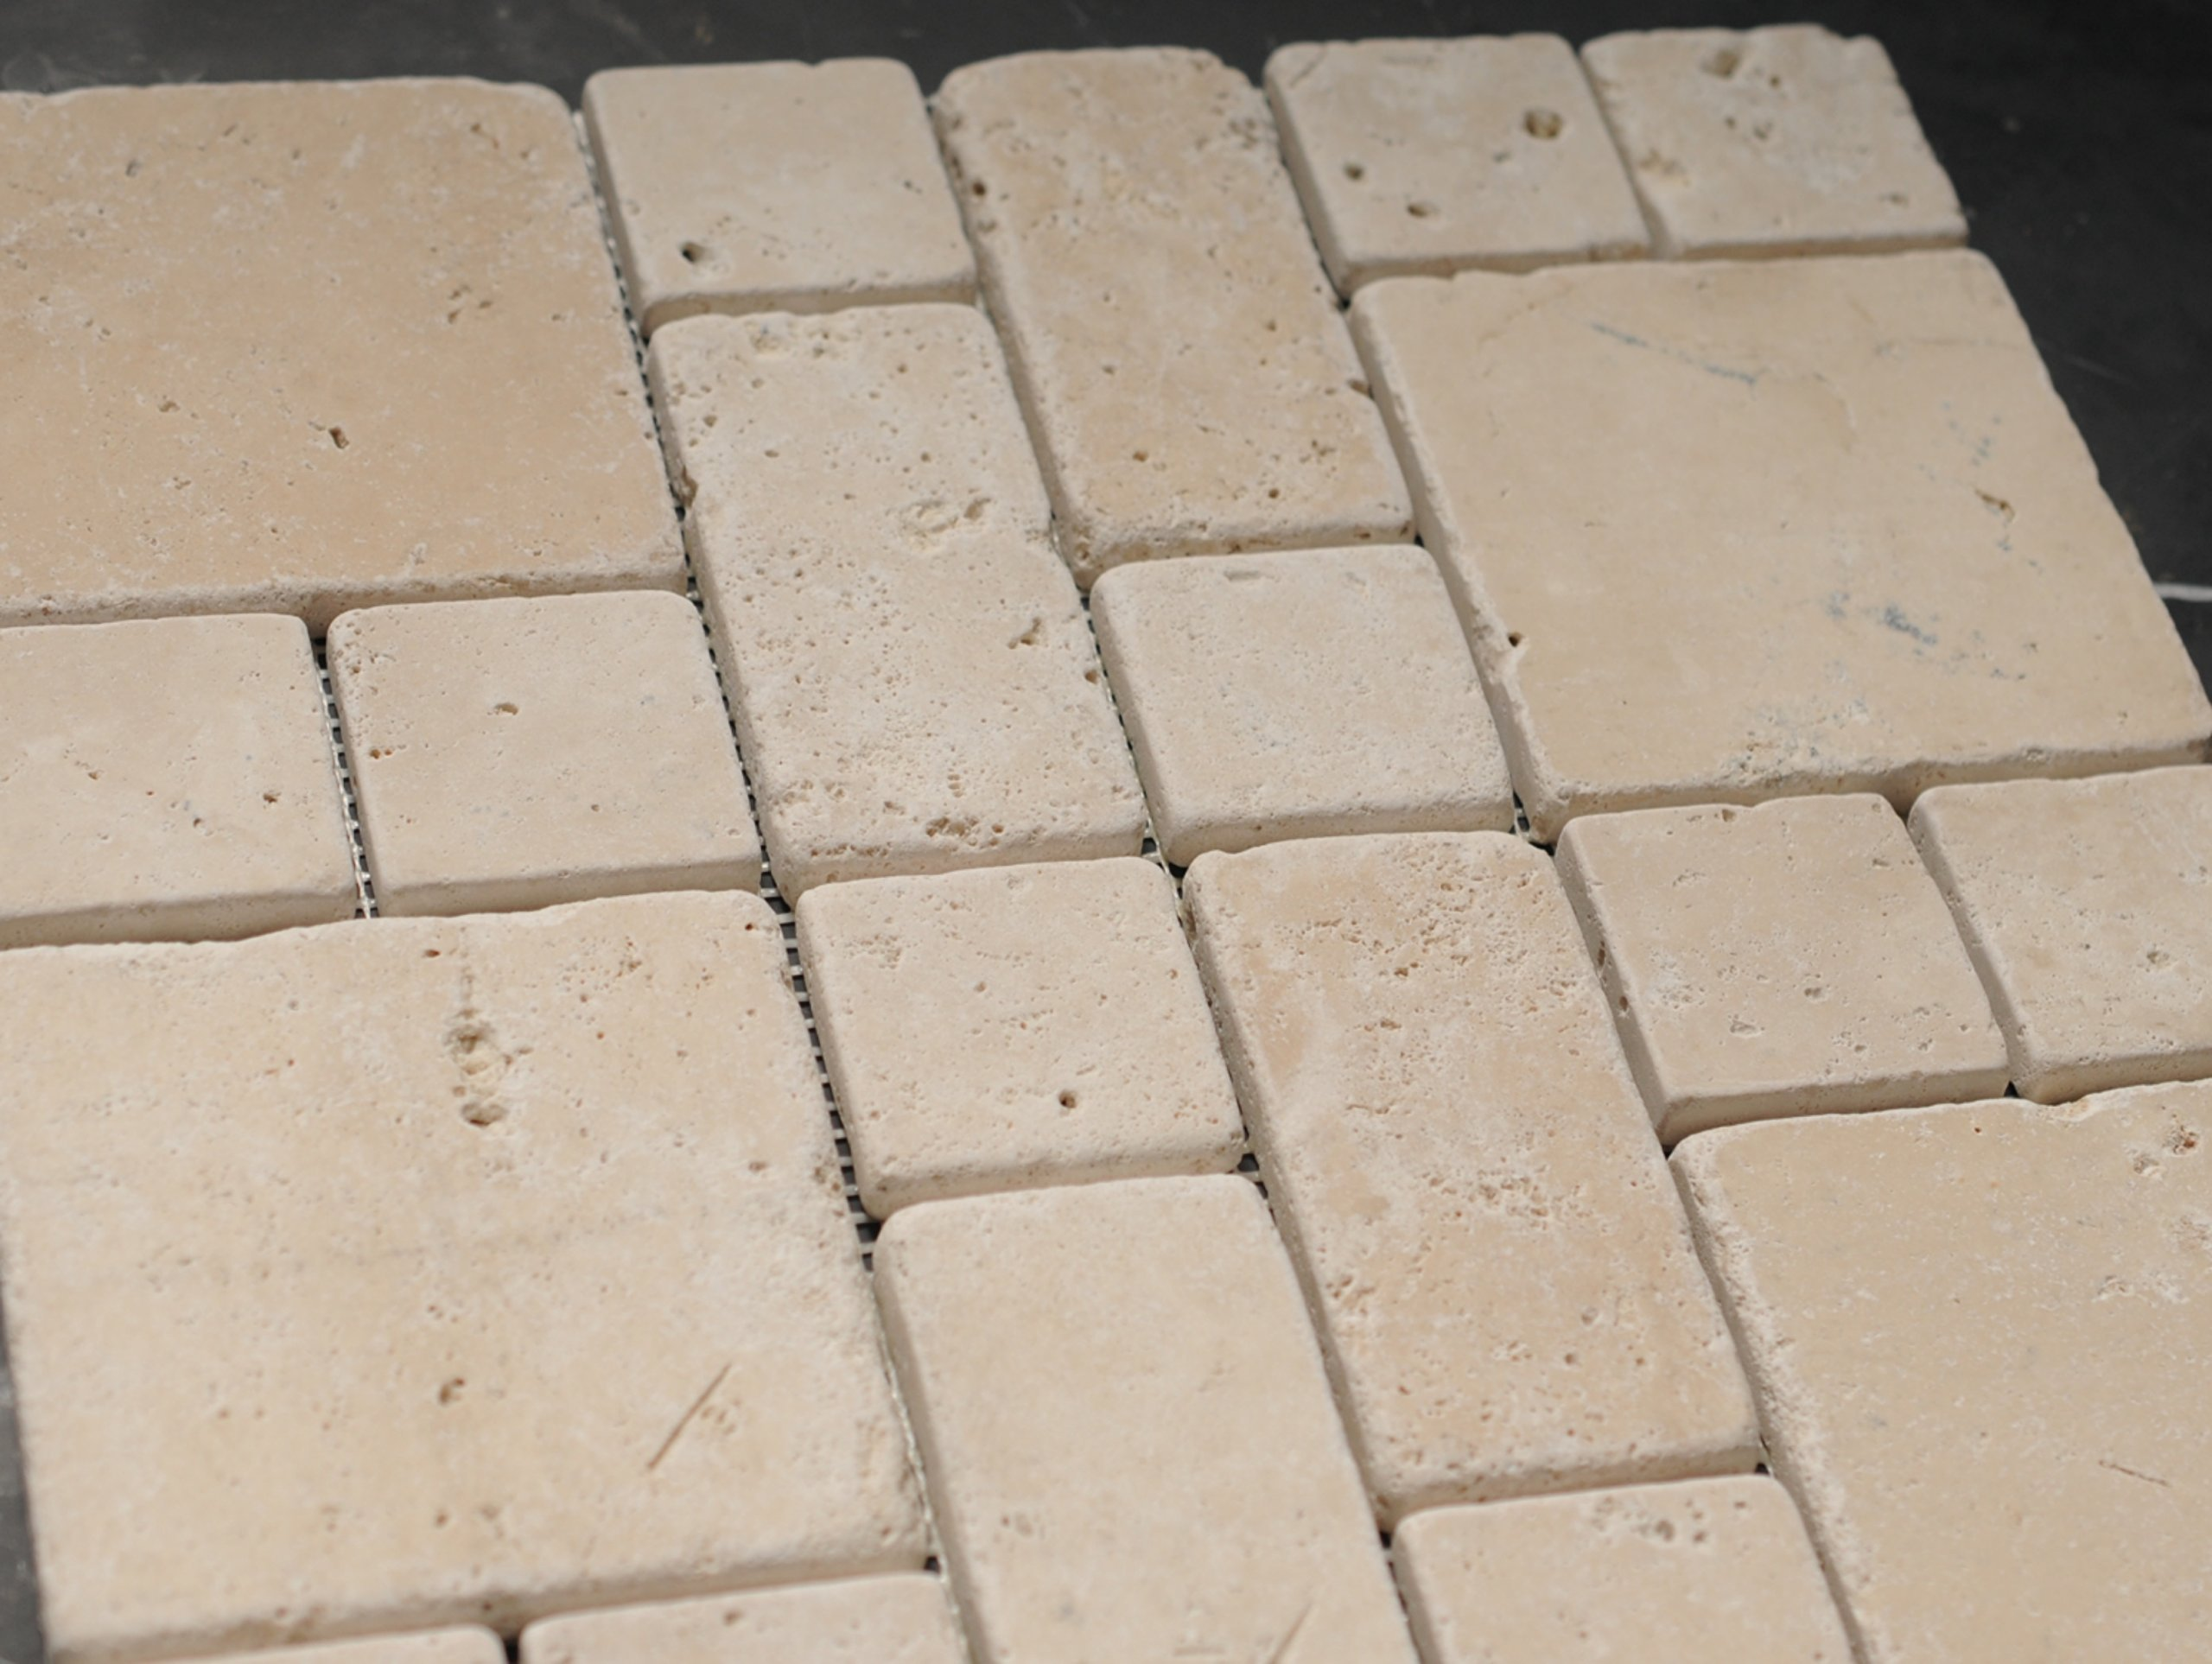 IVORY TRAVERTINE/ LIGHT TRAVERTINE MINI PATTERN TUMBLED MOSAIC TILE- 5 SQF IN A BOX